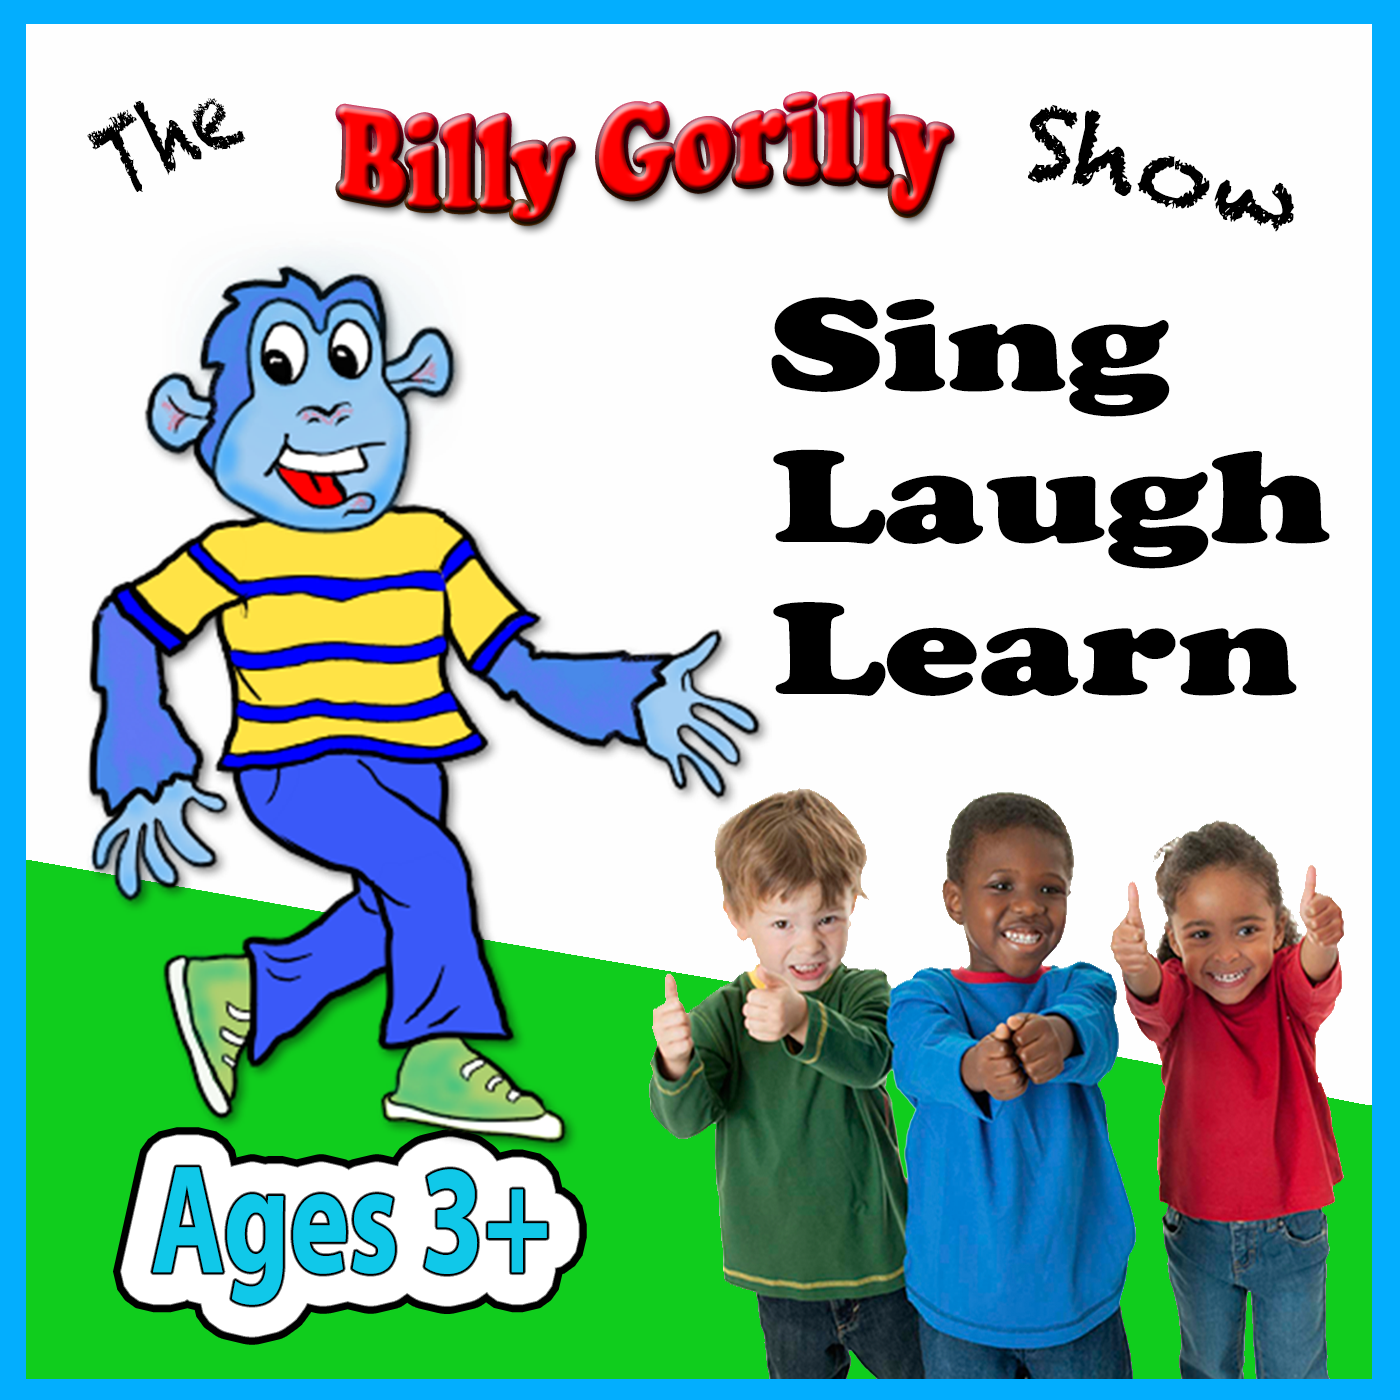 Billy Gorilly's Podcast For Kids